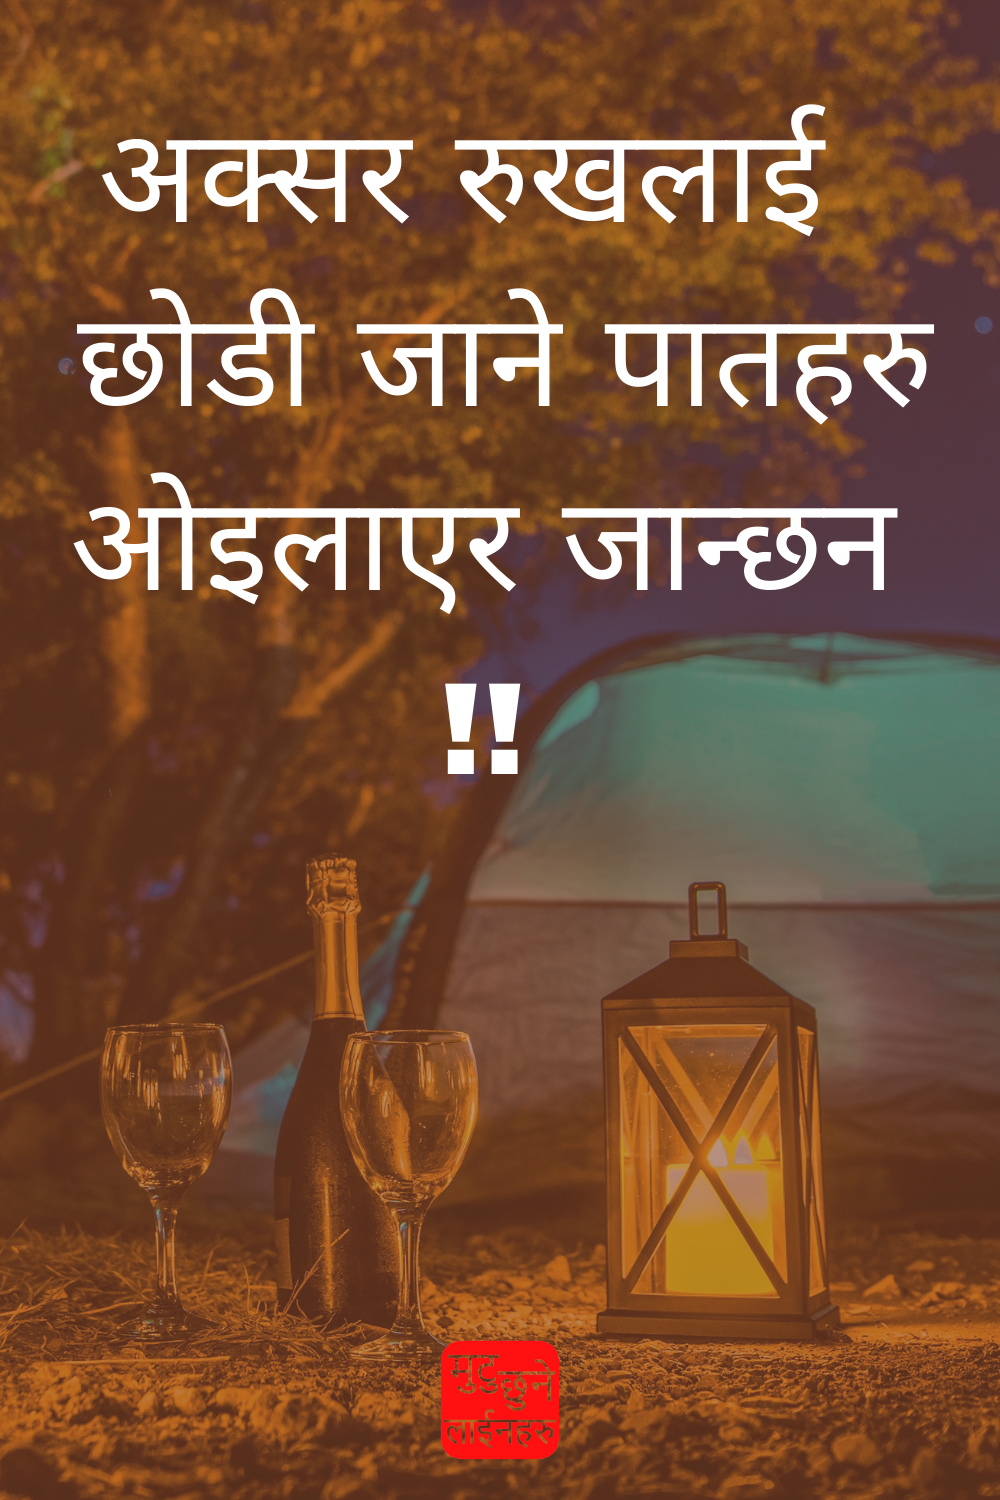 Nepali Quotes On Friendship In 2021 Friendship Quotes Life Status Love Status